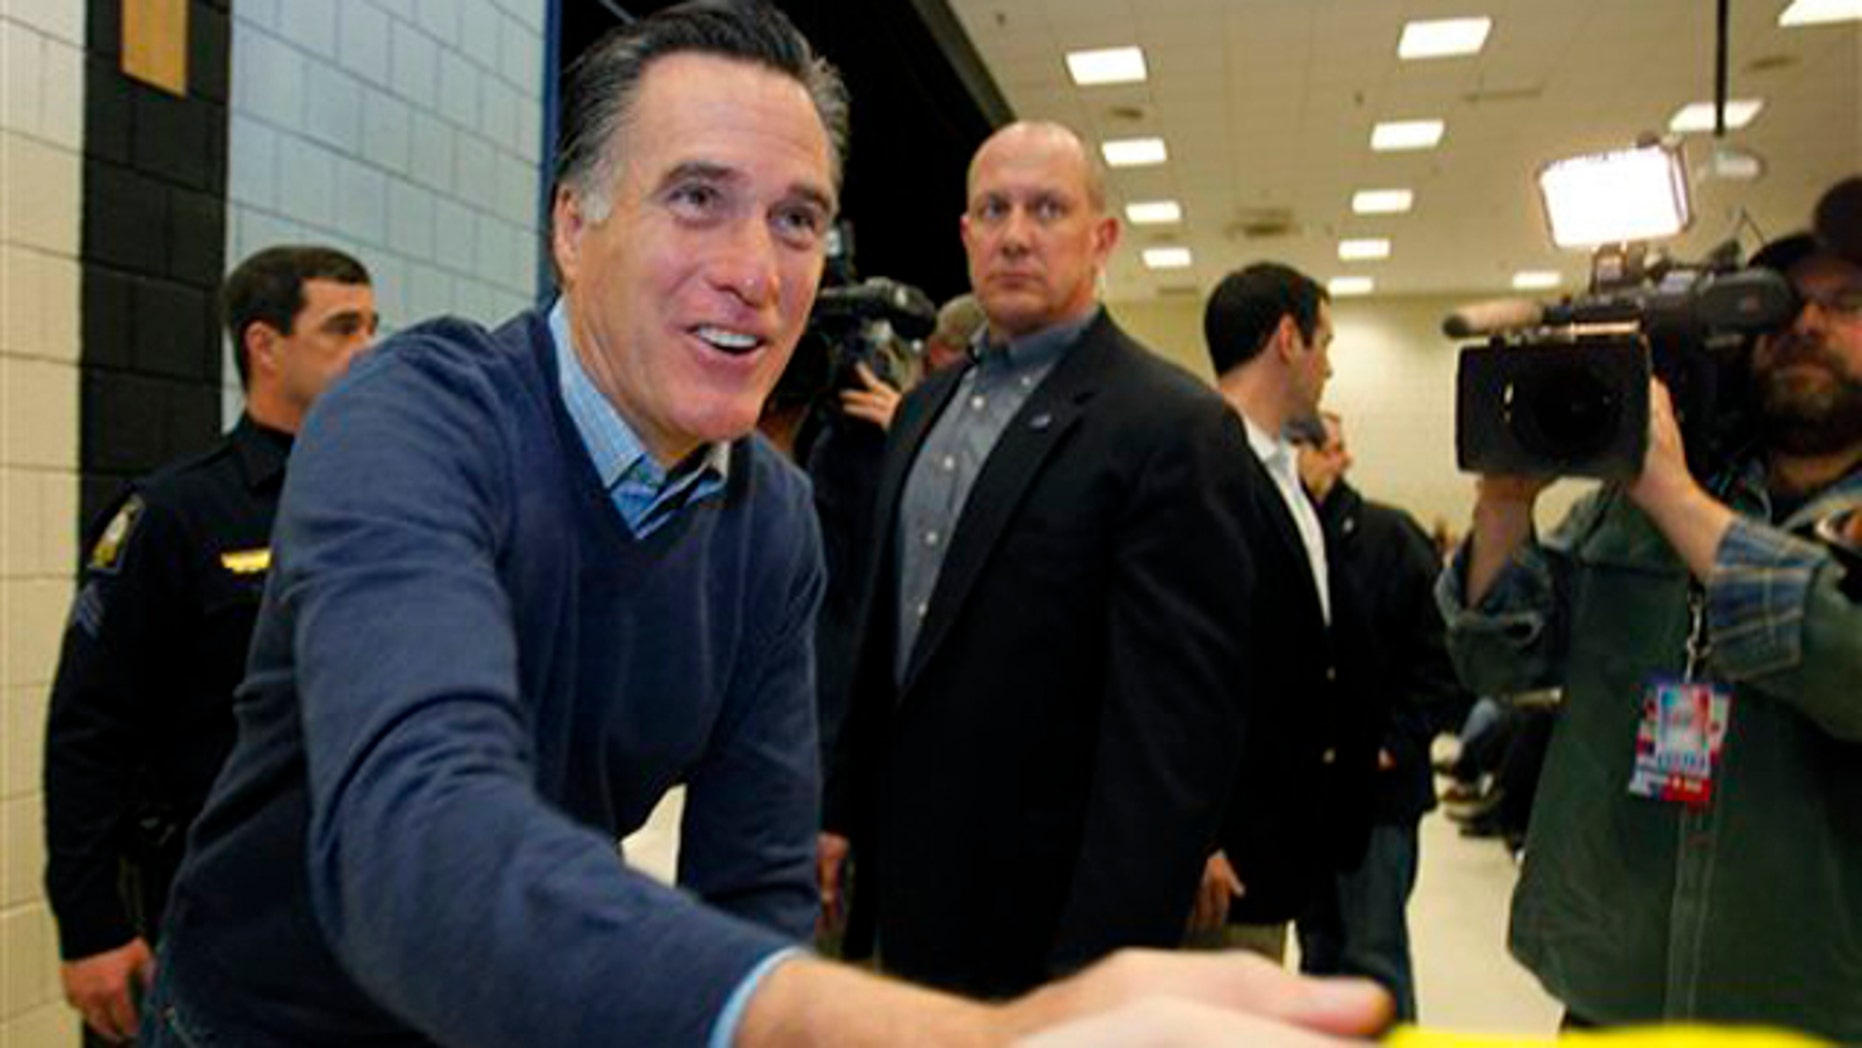 Feb. 11, 2012: Mitt Romney greets supporters at a caucus in Portland, Maine.